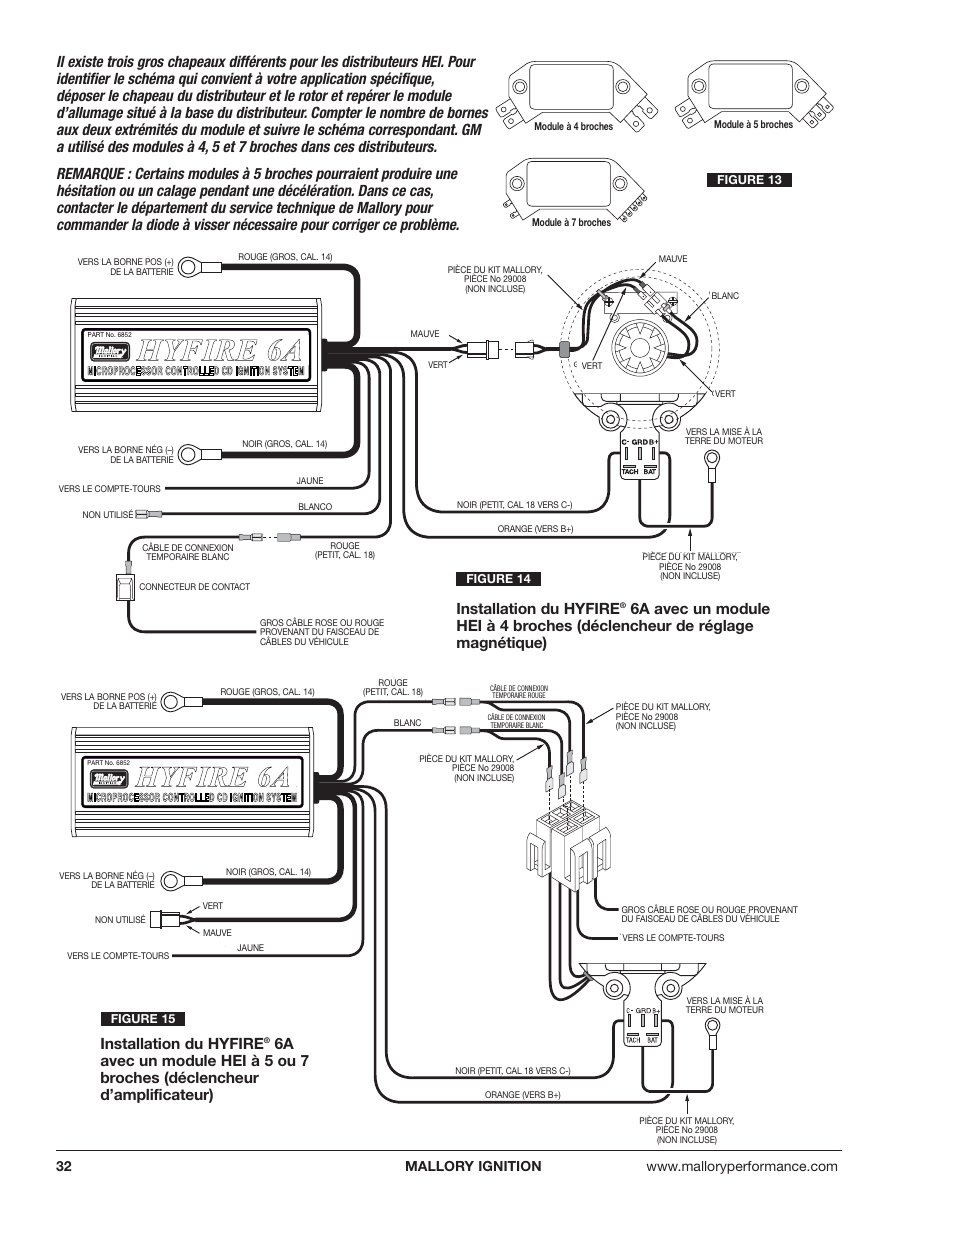 stunning mallory ignition 6al wiring diagram ideas